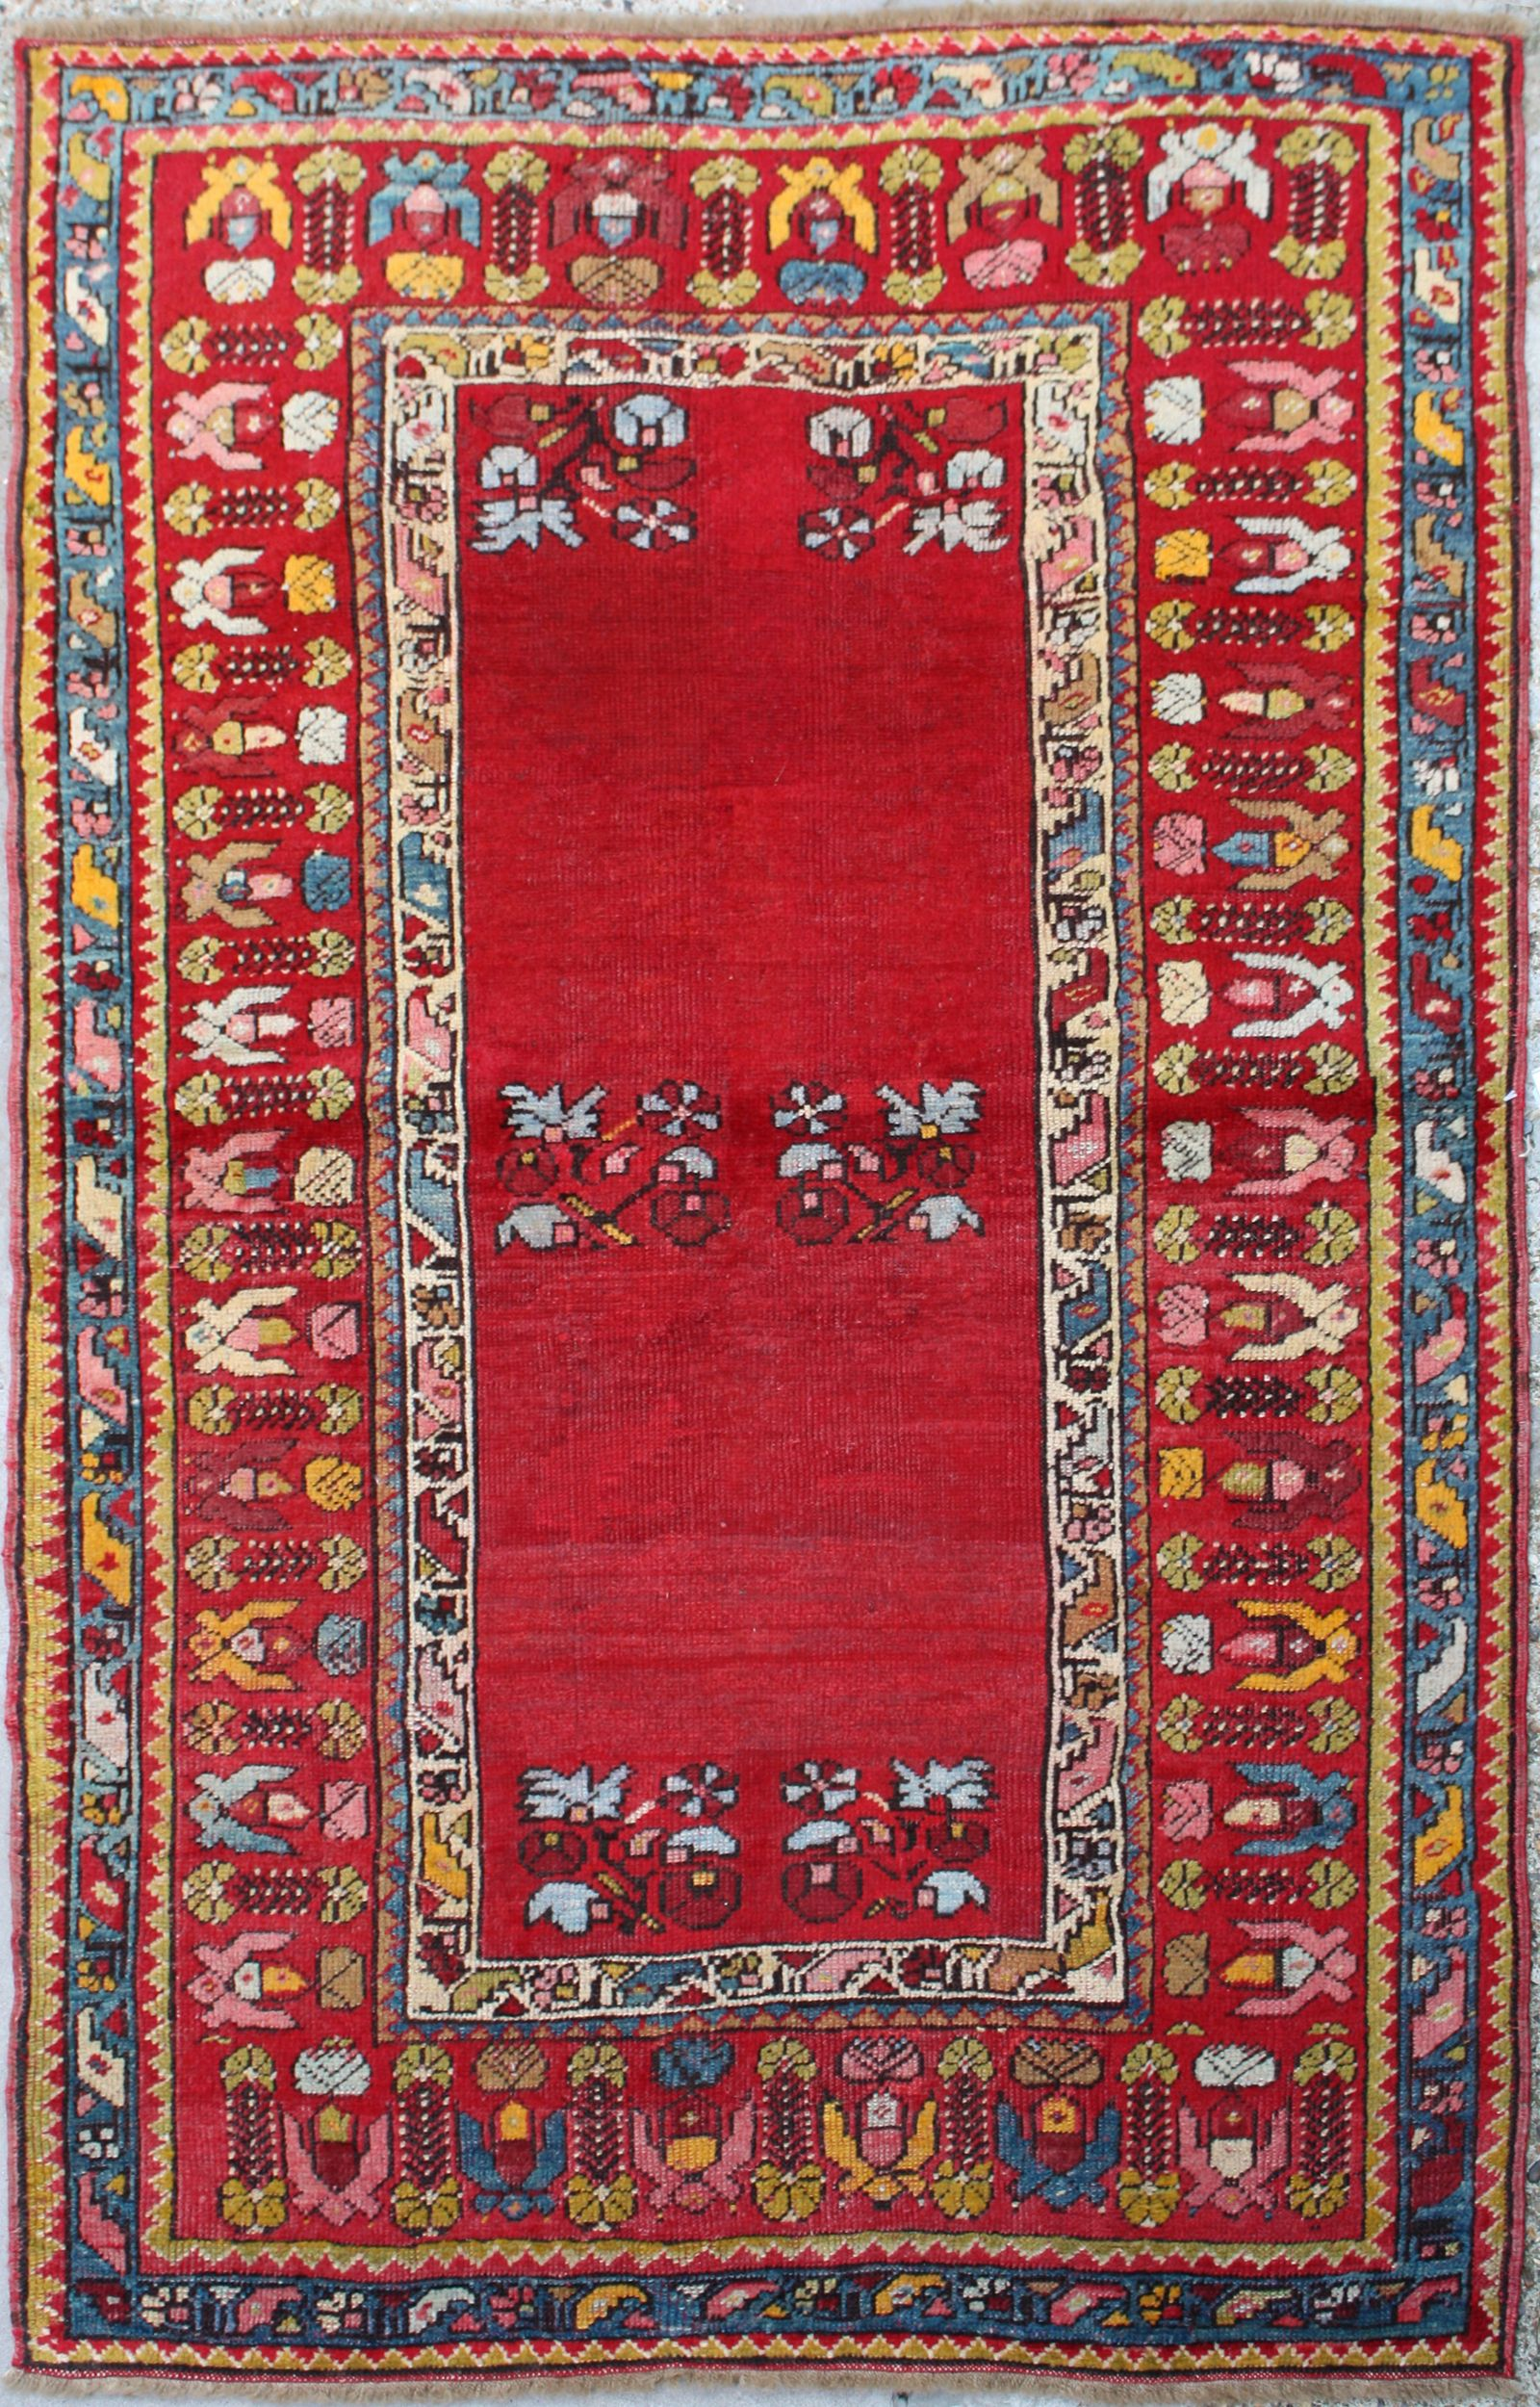 woveny handknotted worn out oushak shop area turkish rugs vintage rug